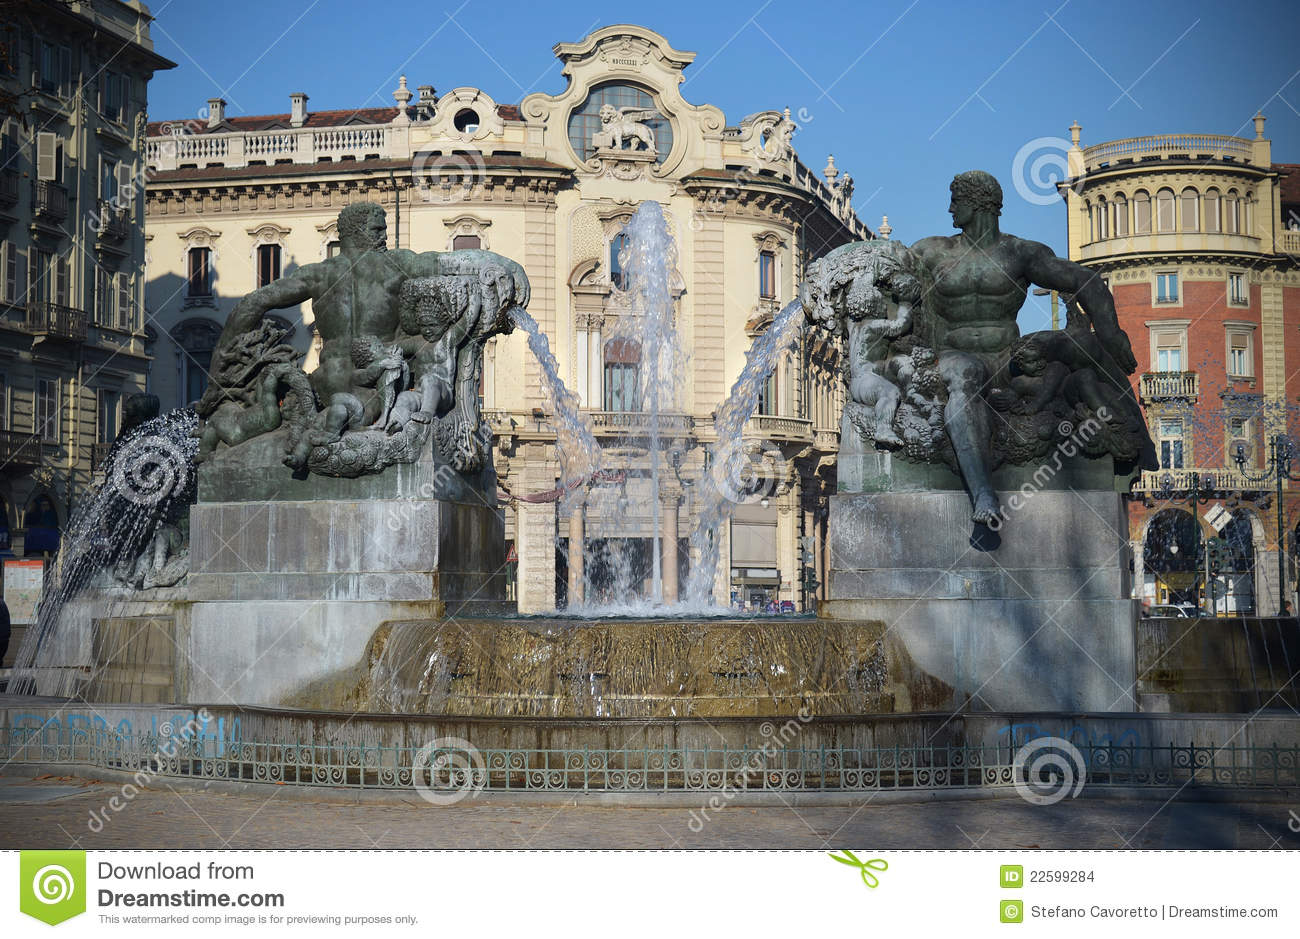 Fontaine dans piazza solferino turin italie images stock for Dans italien